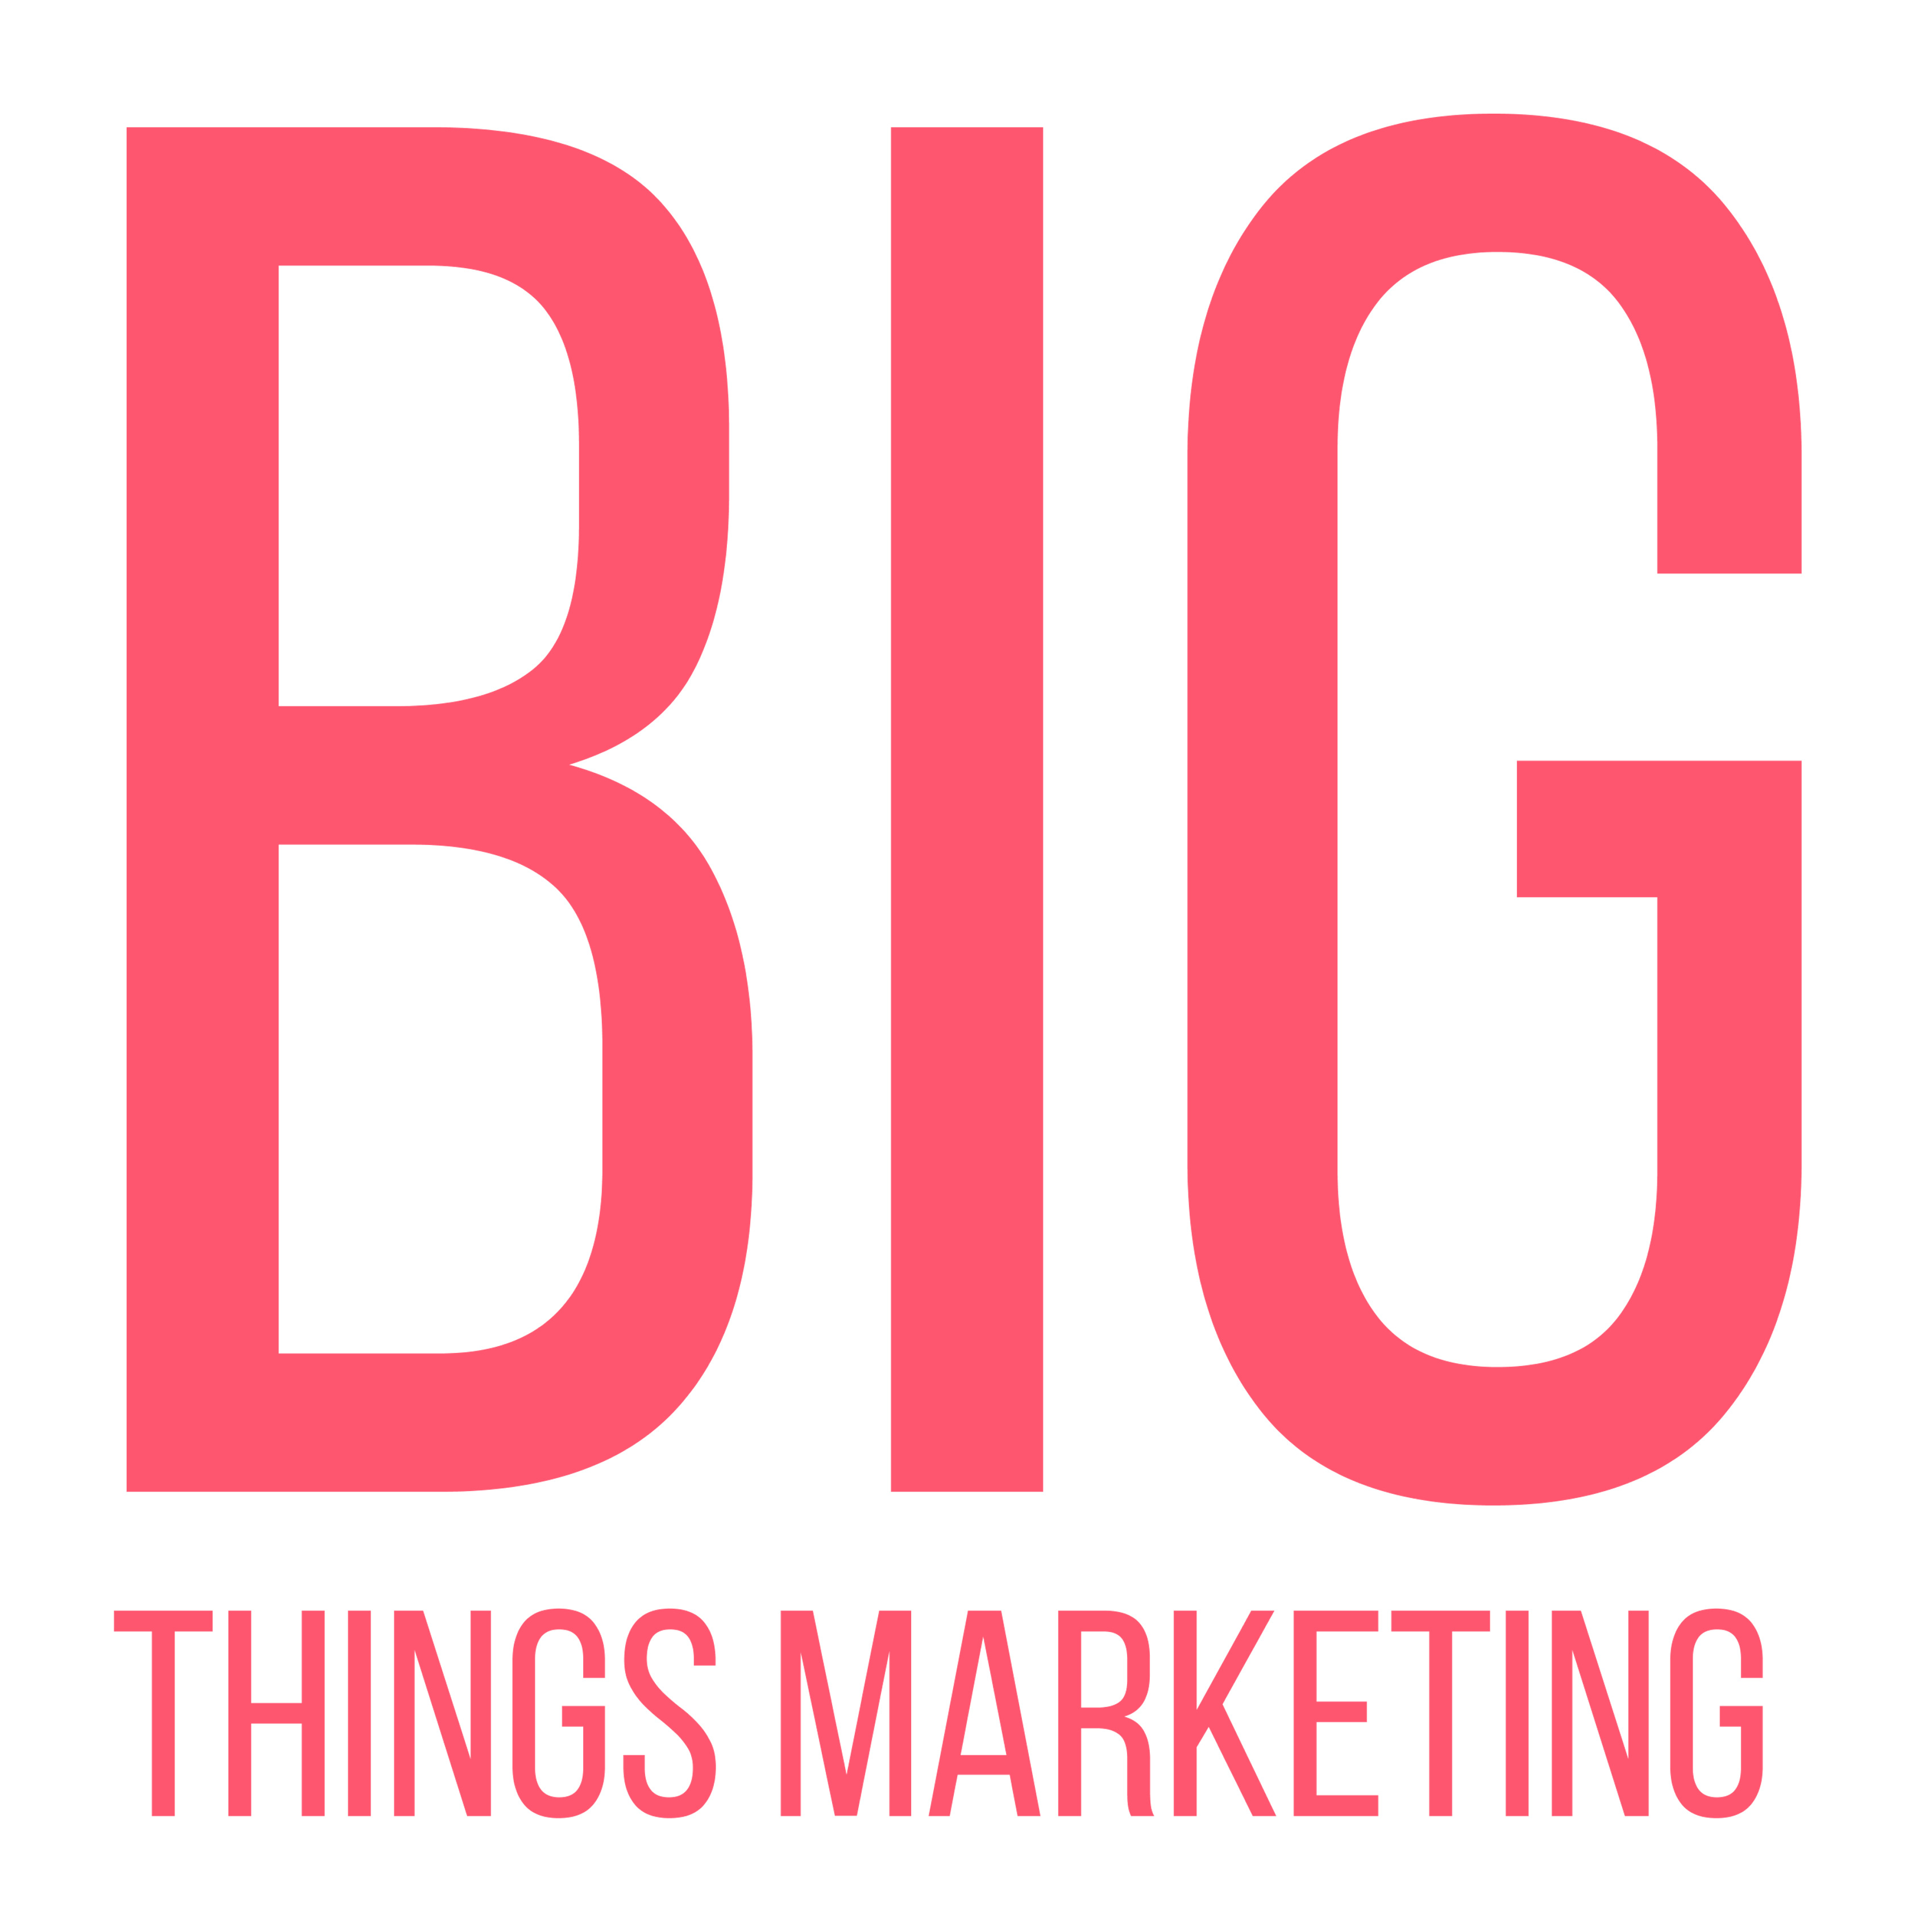 Big Things Marketing